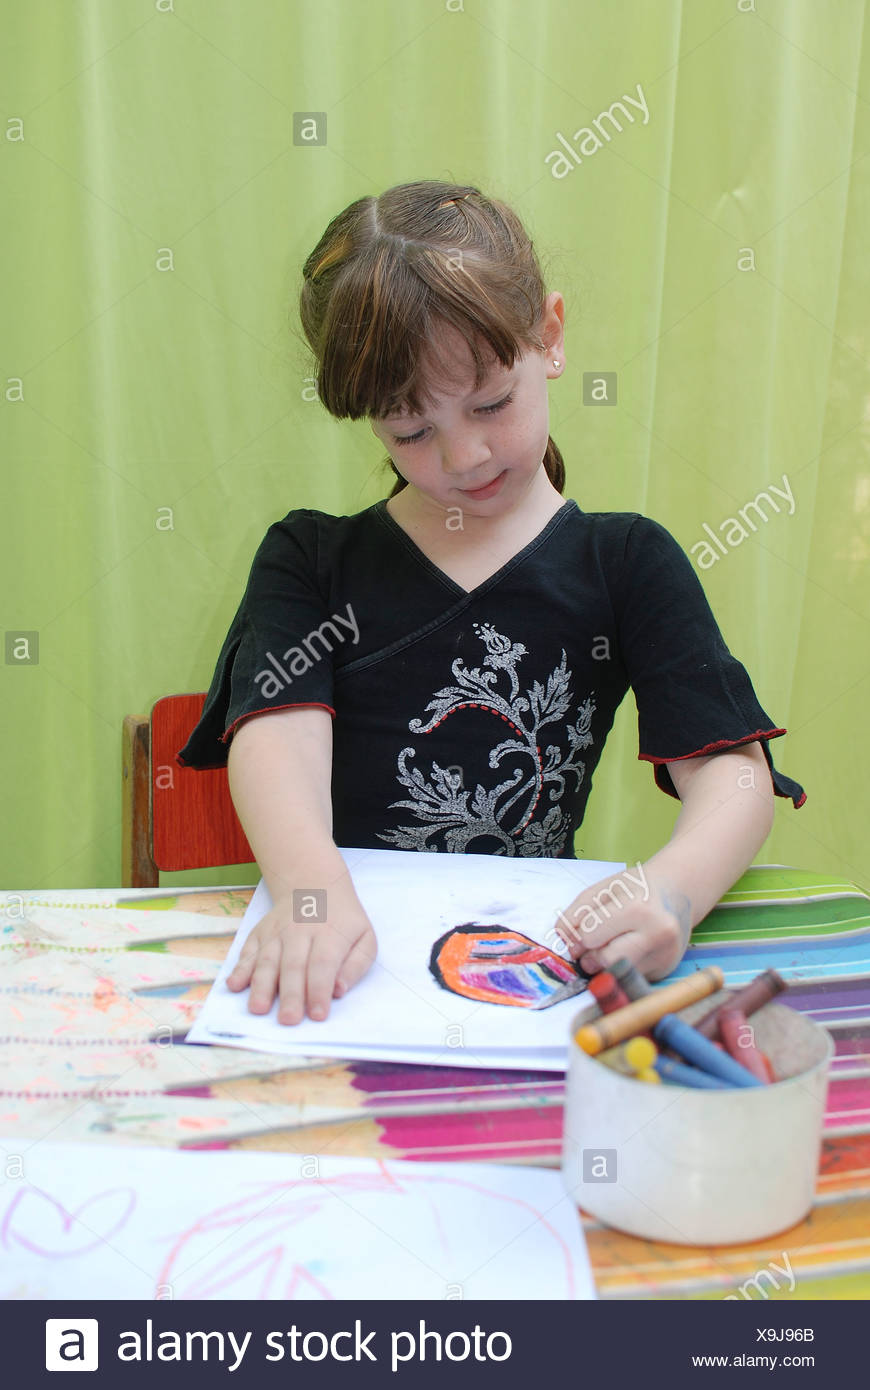 Preschool girl of 5 entertaining herself while drawing - Stock Image